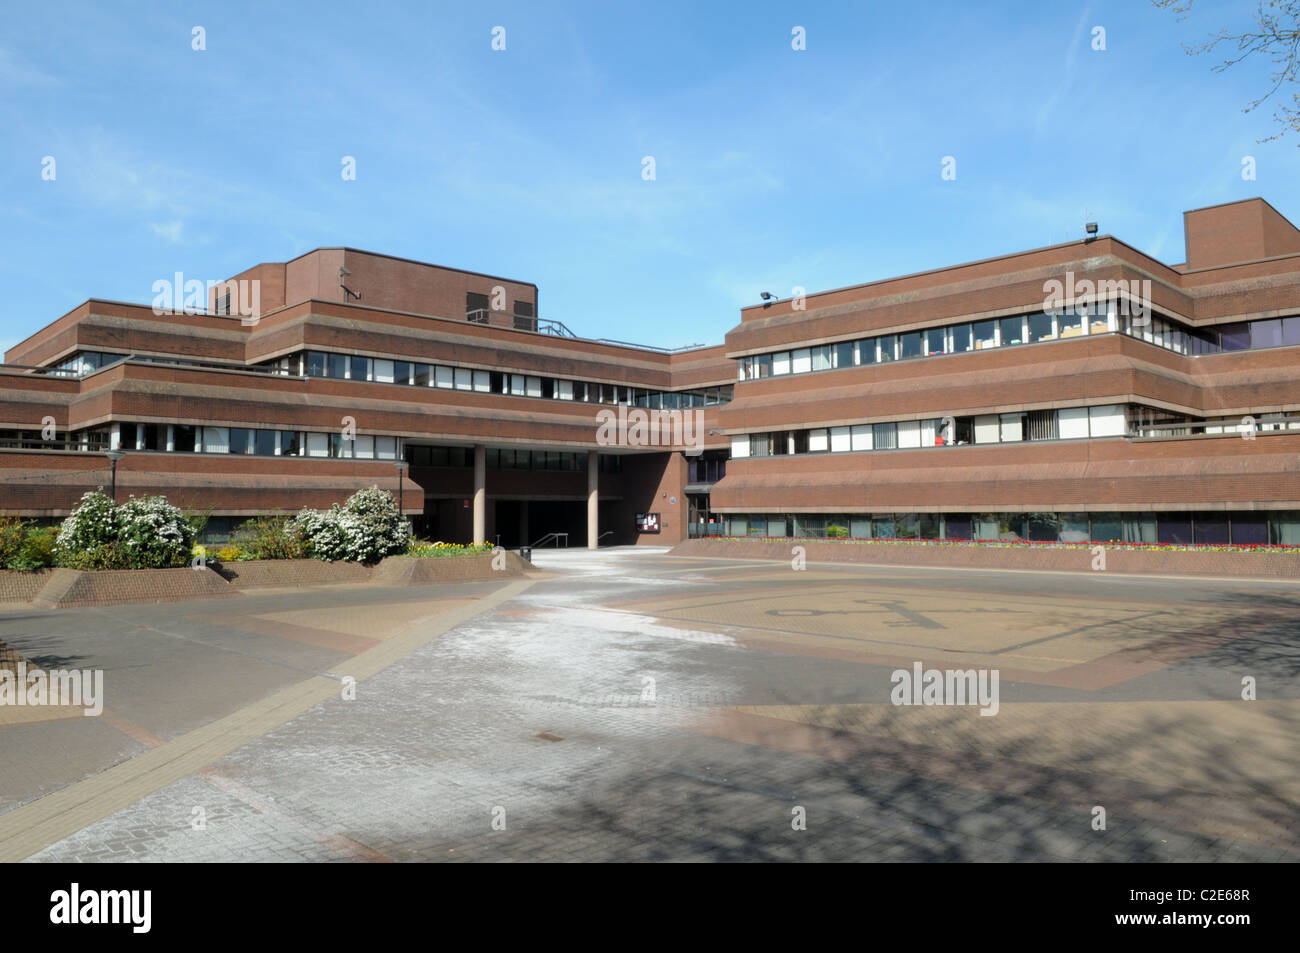 Wolverhampton City Council Civic Centre from St Peter's square an ugly brick-built local authority building - Stock Image